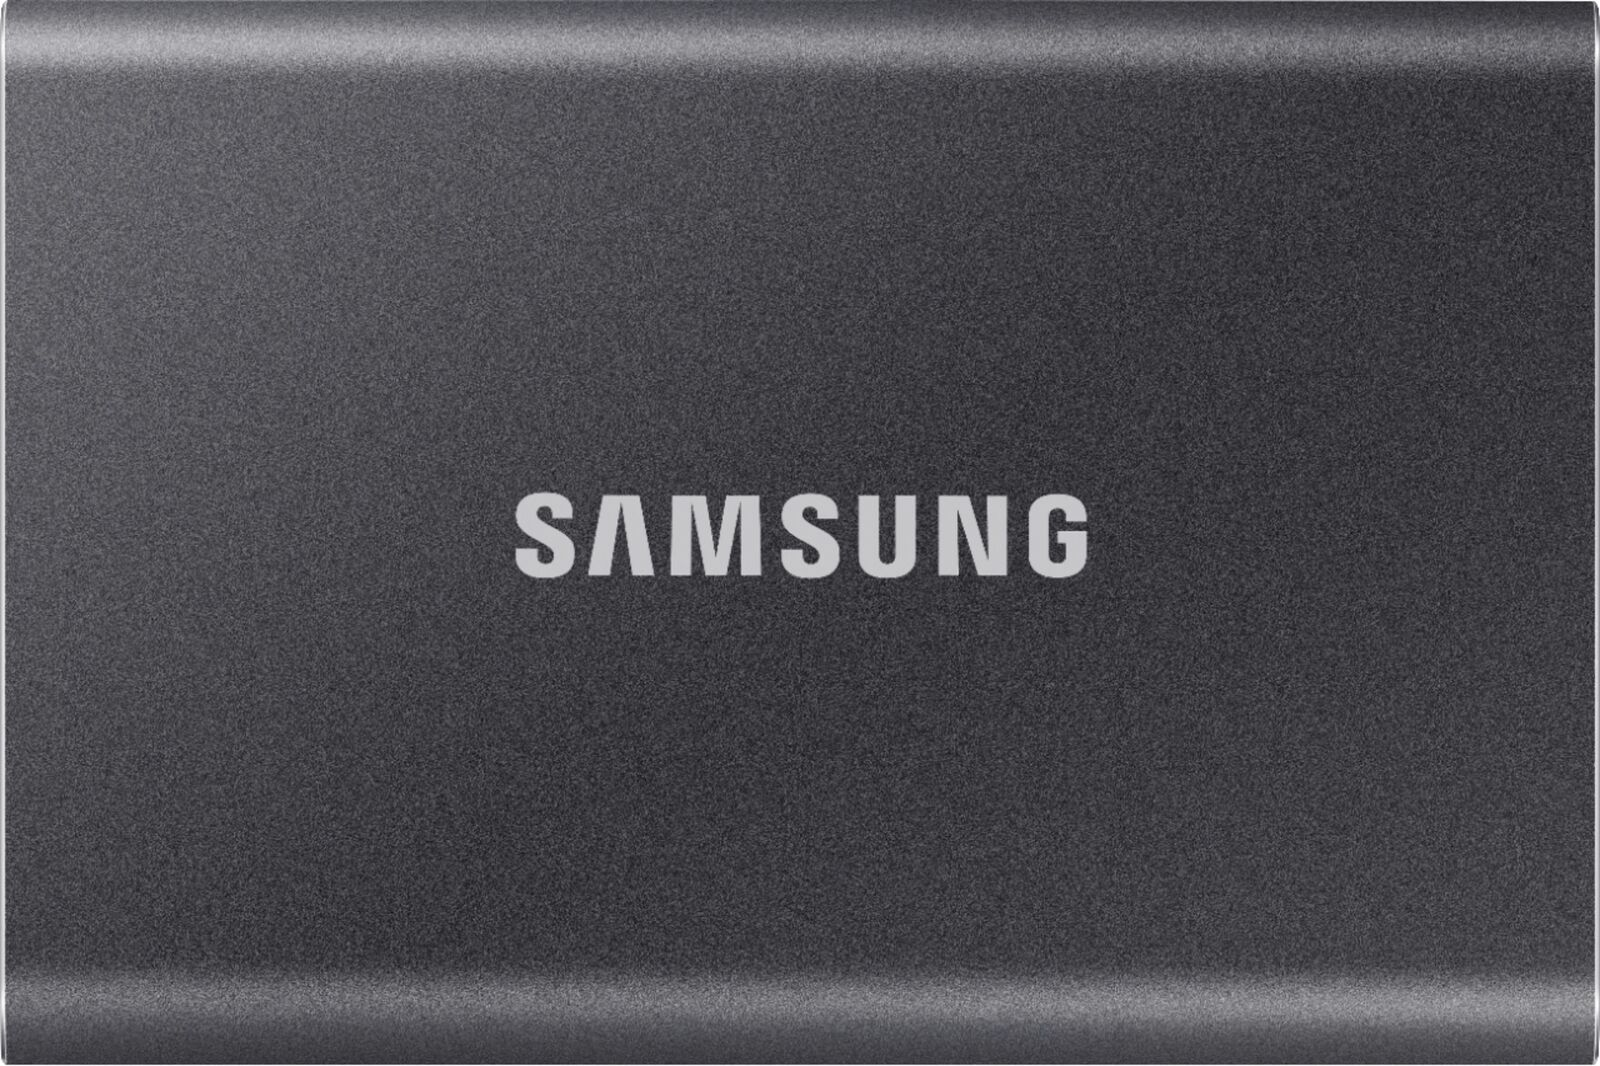 Samsung - T7 500GB External USB 3.2 Gen 2 Portable Solid State Drive with Har.... Buy it now for 89.99